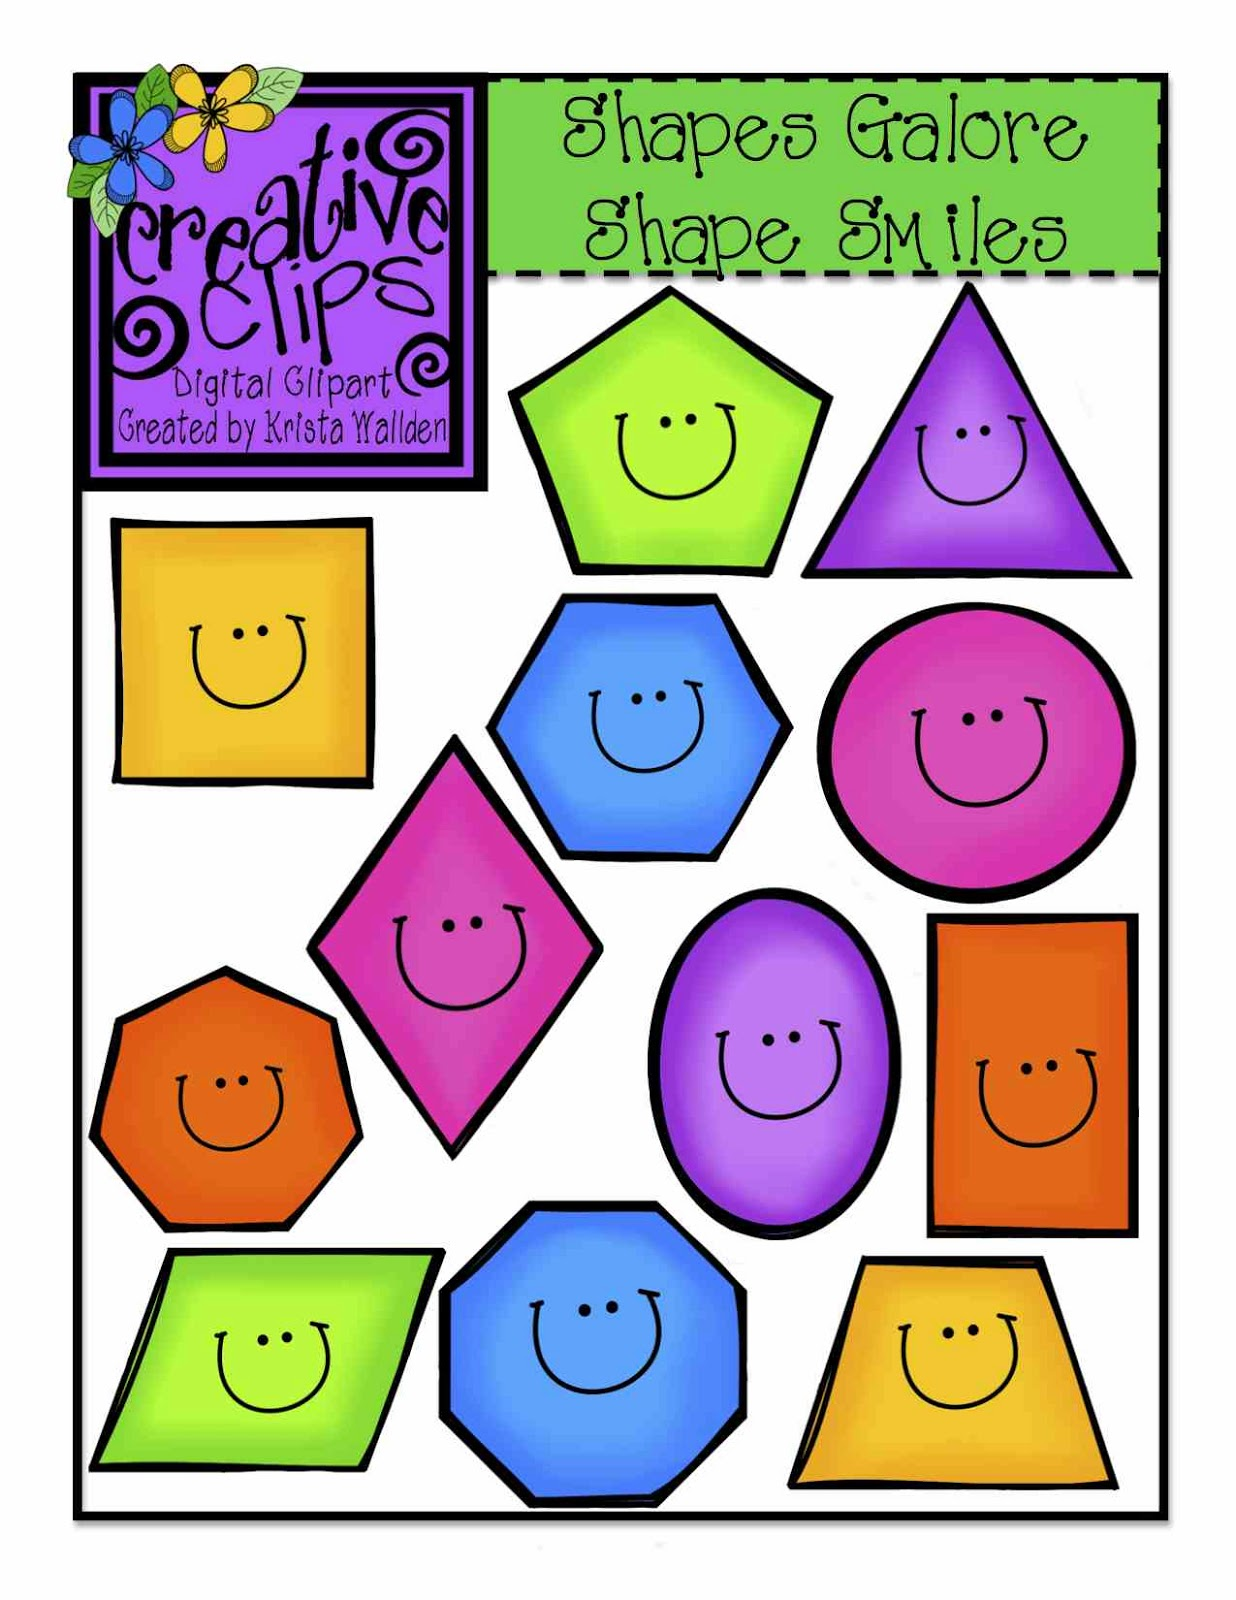 Shapes clipart #2, Download drawings